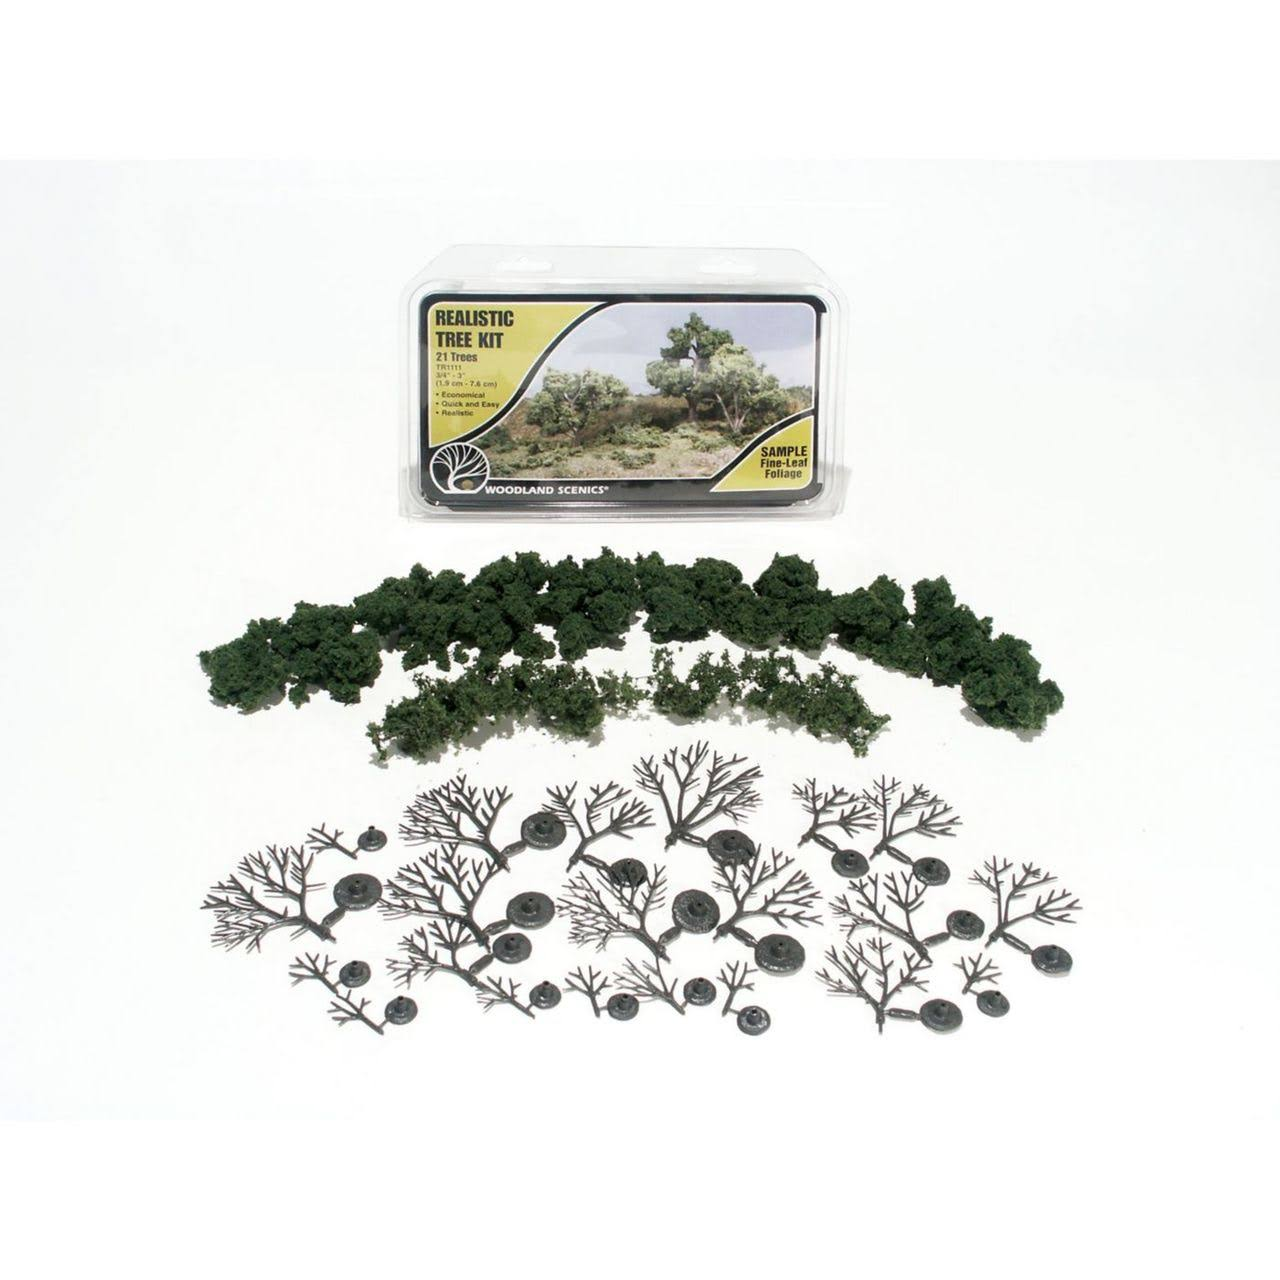 Woodland Scenics Medium Green Realistic Tree Kit